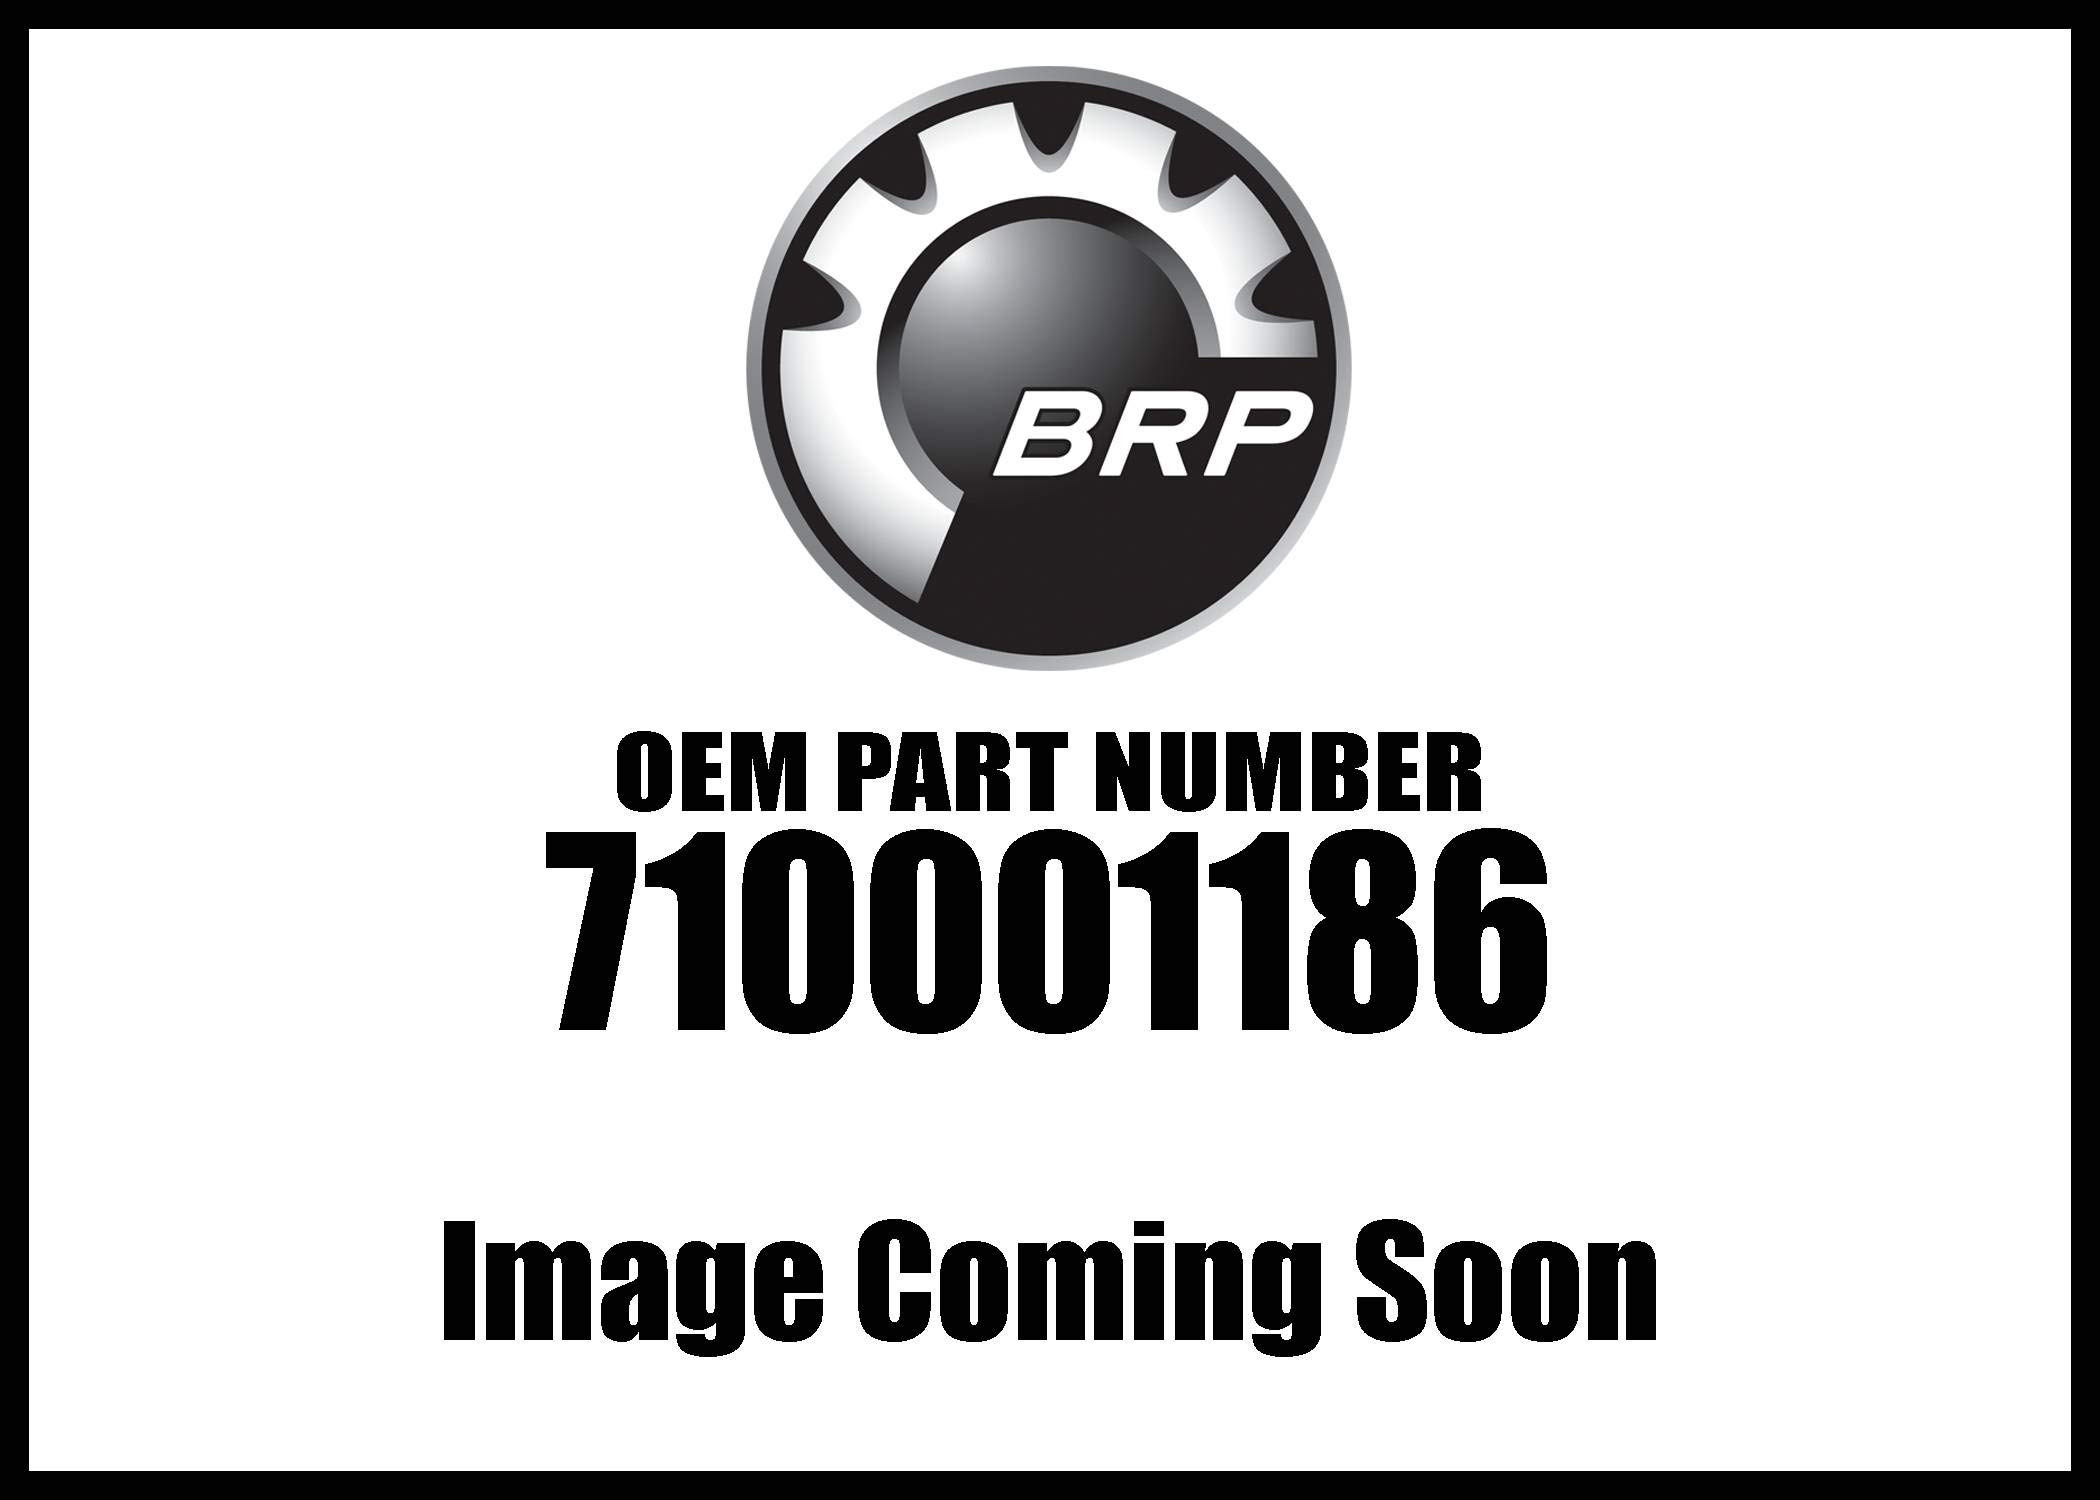 Spyder 2008-2012 Spyder Gs Roadster With Sm5 Transmission Joint De Fil Seal Wire 710001186 New Oem